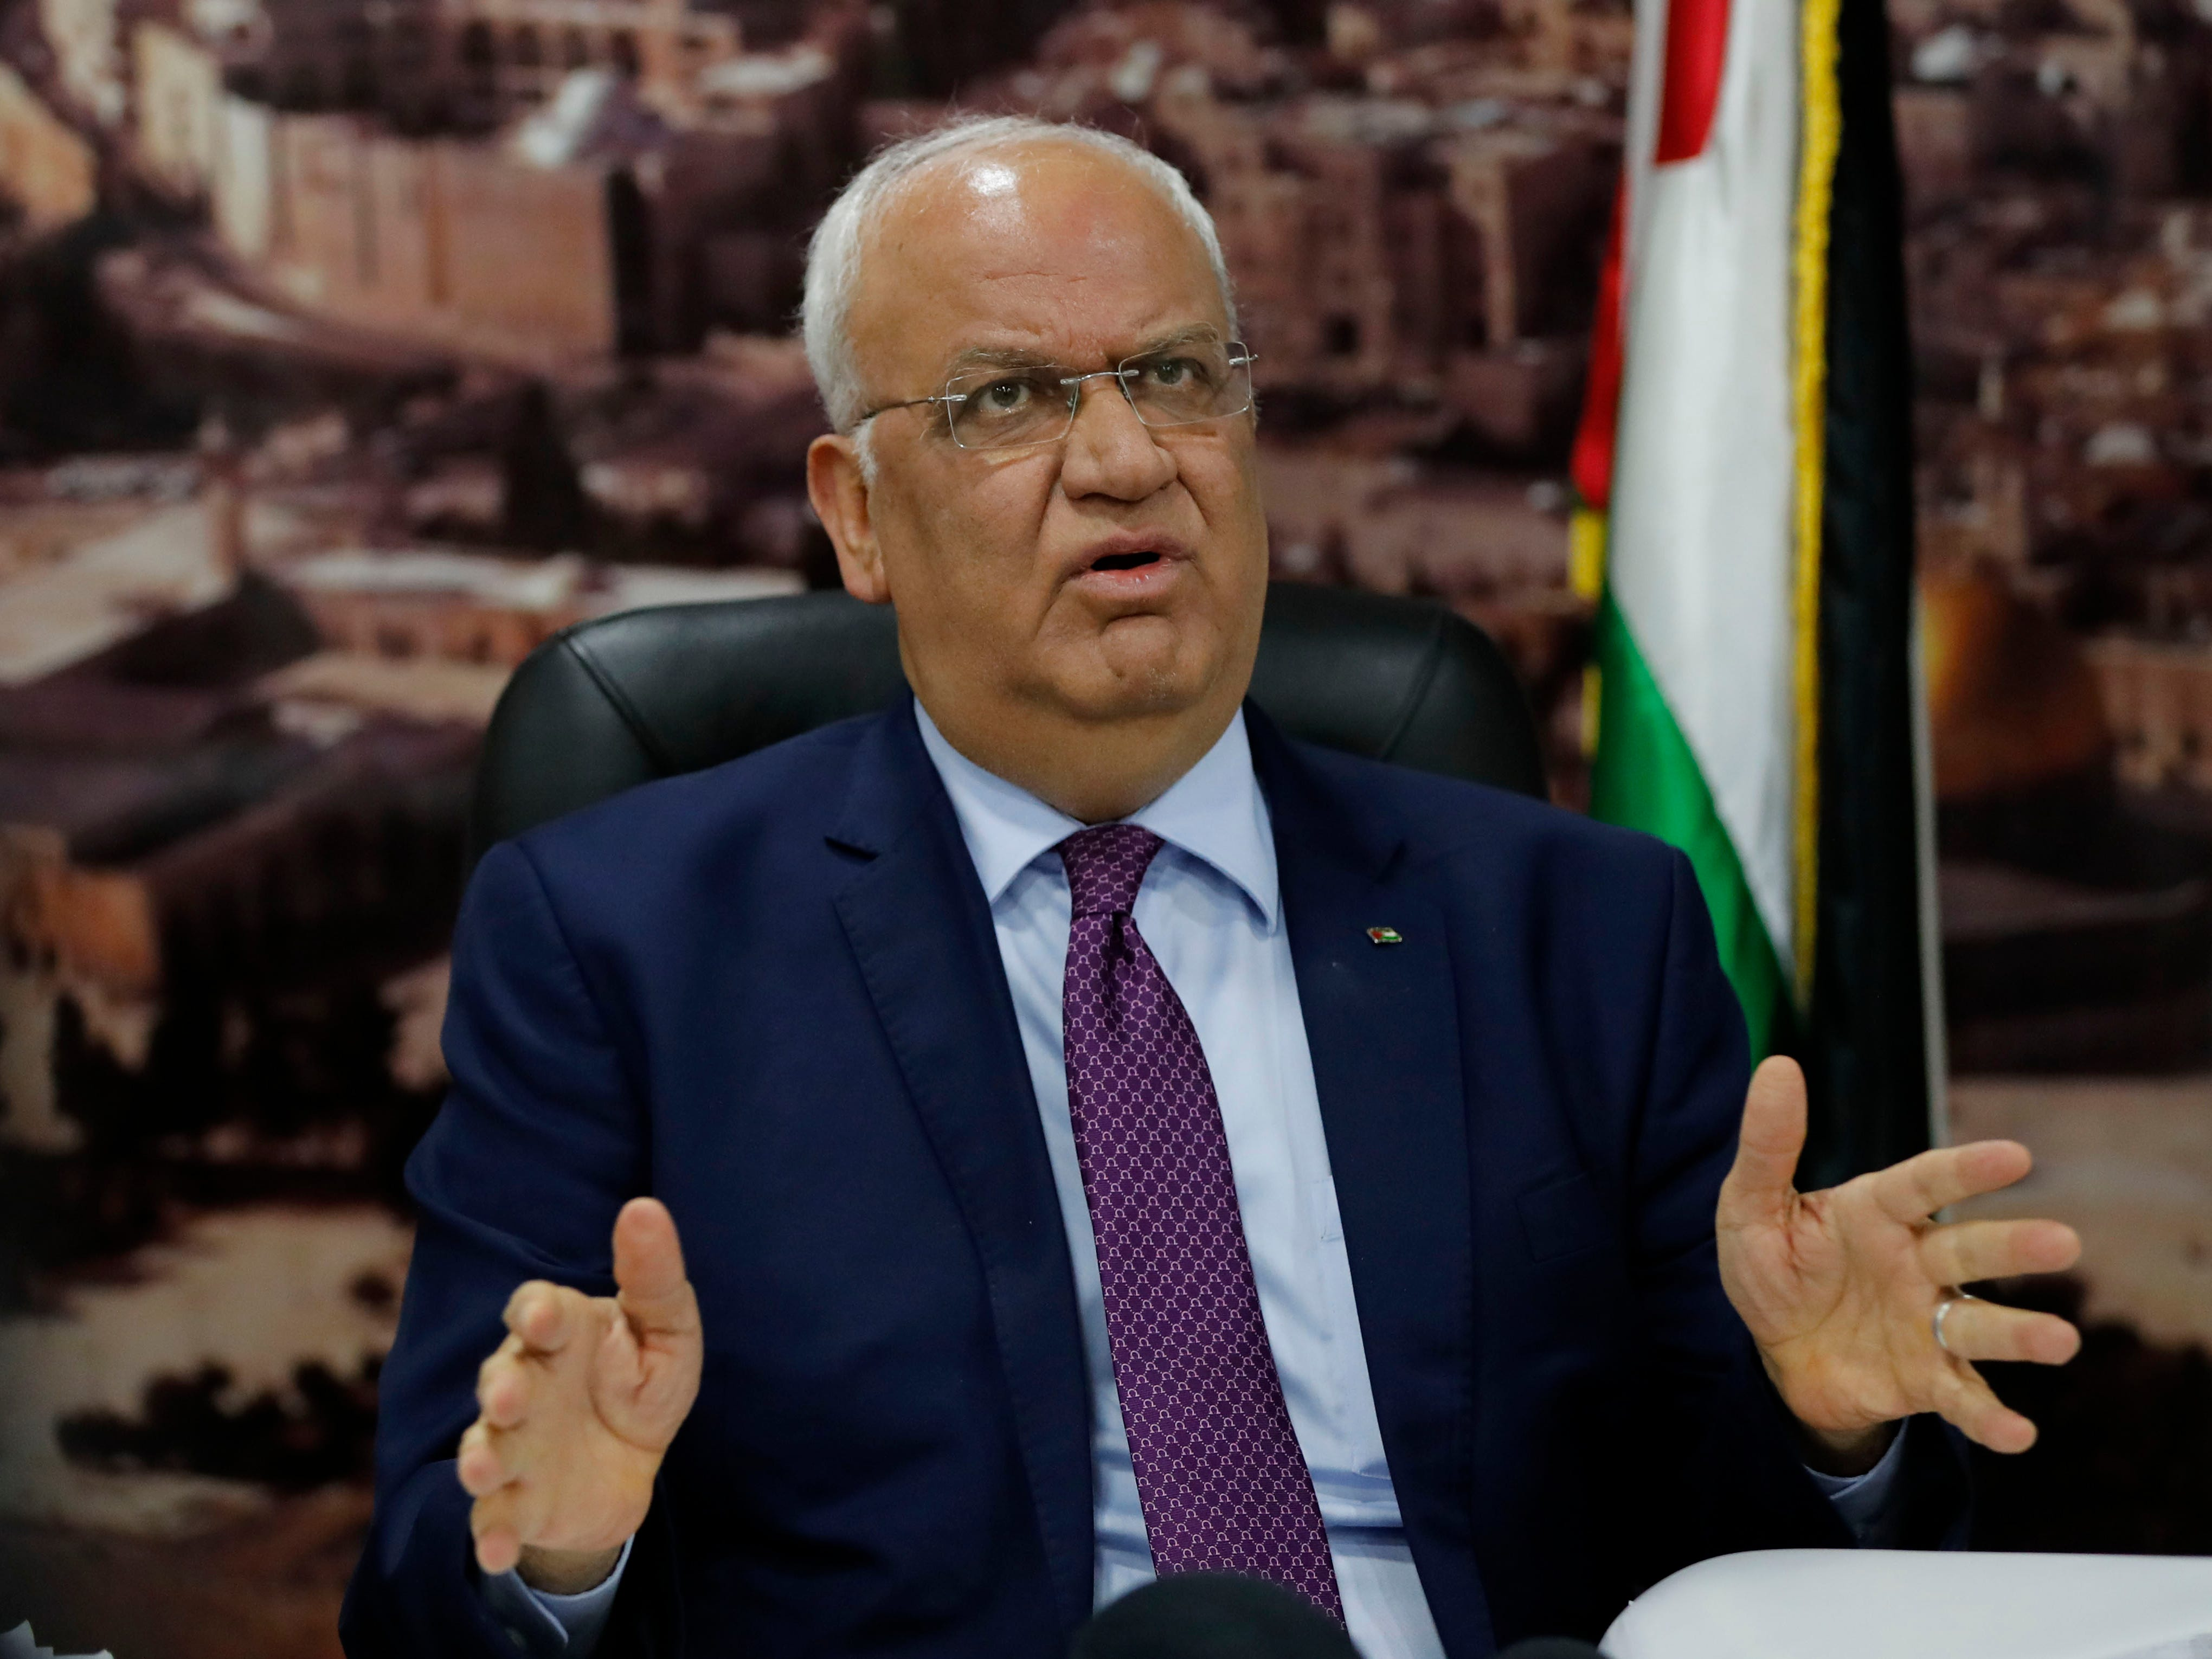 "Saeb Erekat, secretary general of the Palestine Liberation Organisation, speaks to journalists in the West Bank city of Ramallah on September 1, 2018 - Palestinians reacted angrily today to a US decision to end all funding for the UN agency that assists millions of refugees, seeing it as a new policy shift aimed at undermining their cause. Chief Palestinian negotiator Saeb Erekat said the American administration was invalidating future peace talks by ""preempting, prejudging issues reserved for permanent status"" negotiations. (Photo by AHMAD GHARABLI / AFP)AHMAD GHARABLI/AFP/Getty Images ORIG FILE ID: AFP_18R7TL"